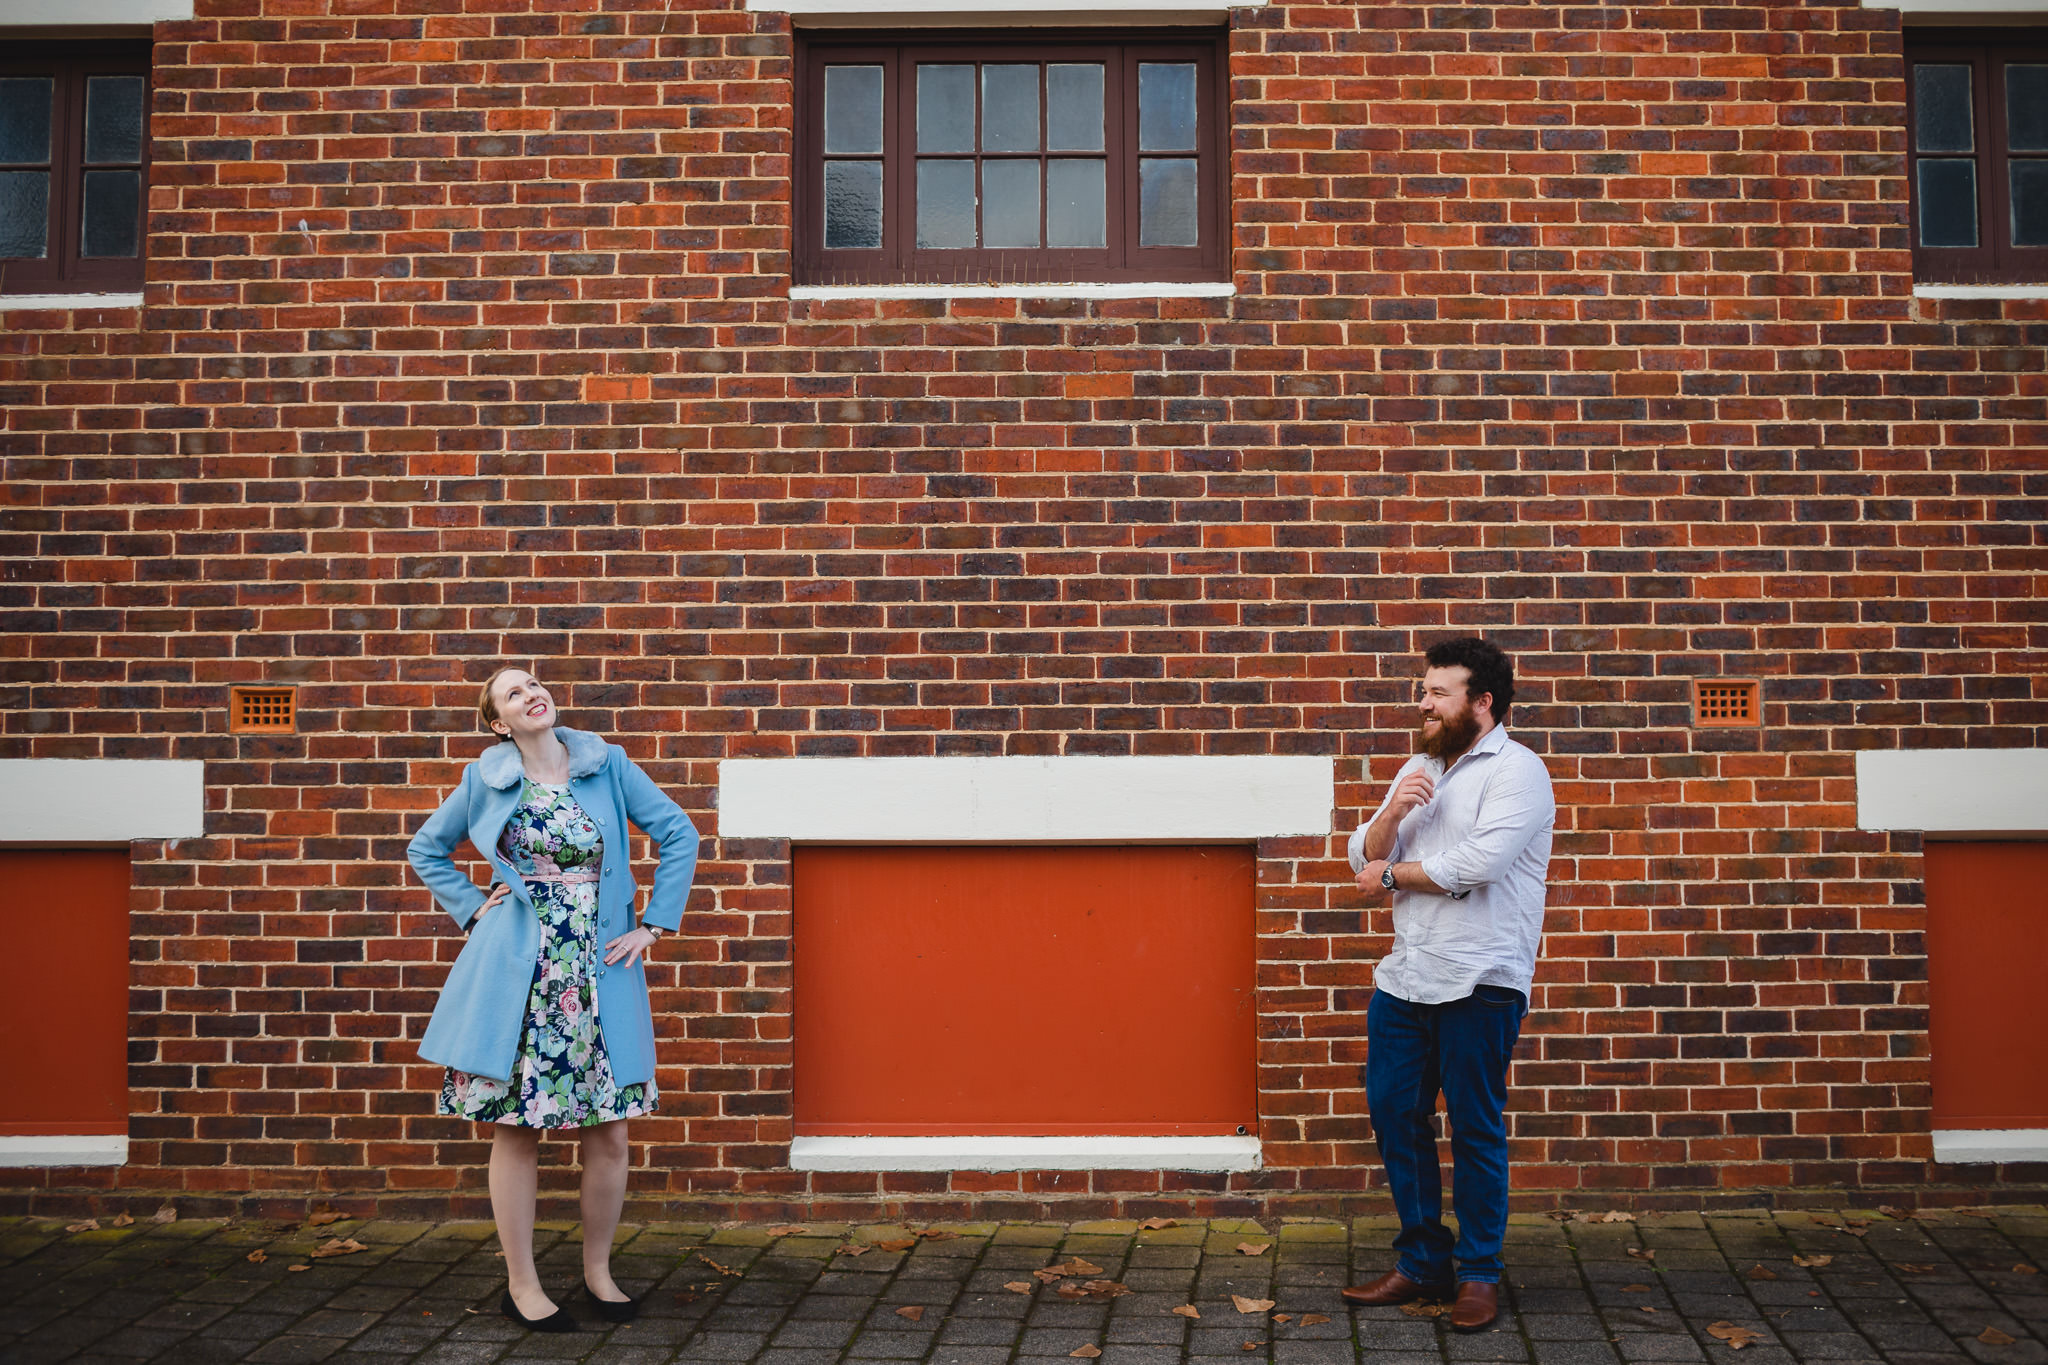 Couple with vintage style quirky posing in front of historic red brick building in Guildford, Western Australia